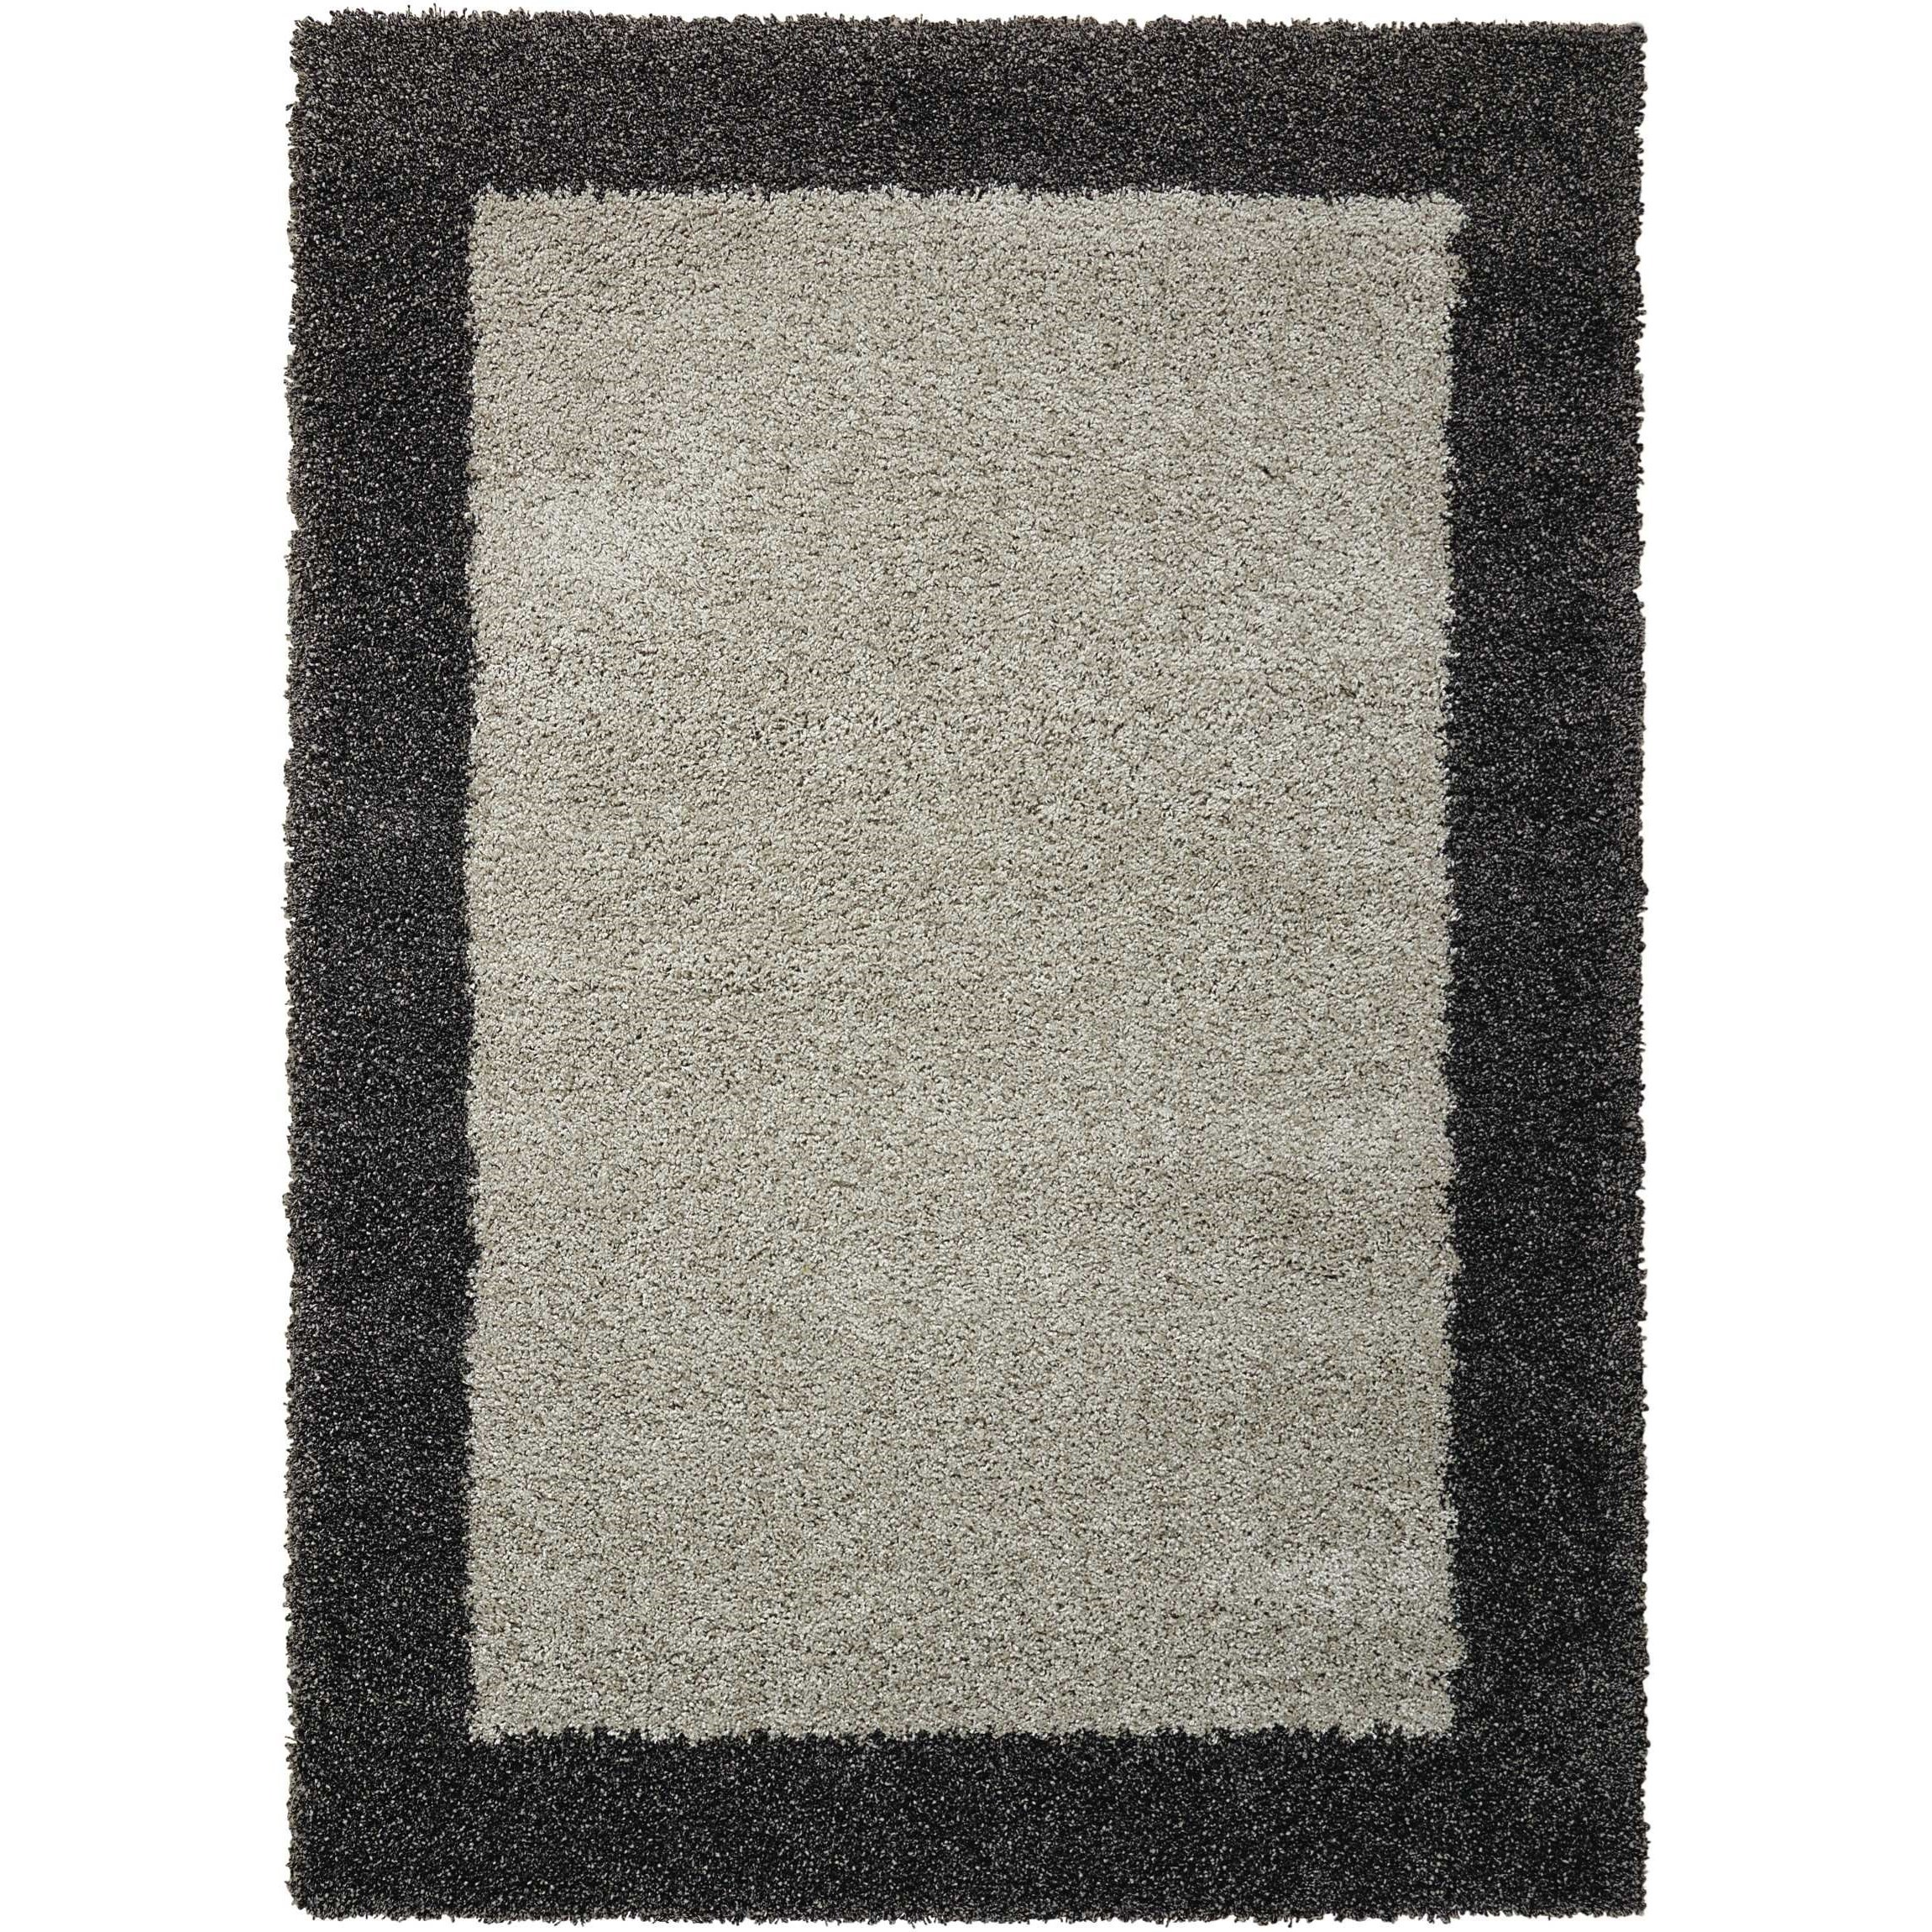 "Amore 5'3"" x 7'5"" Silver/Charcoal Rectangle Rug by Nourison at Home Collections Furniture"